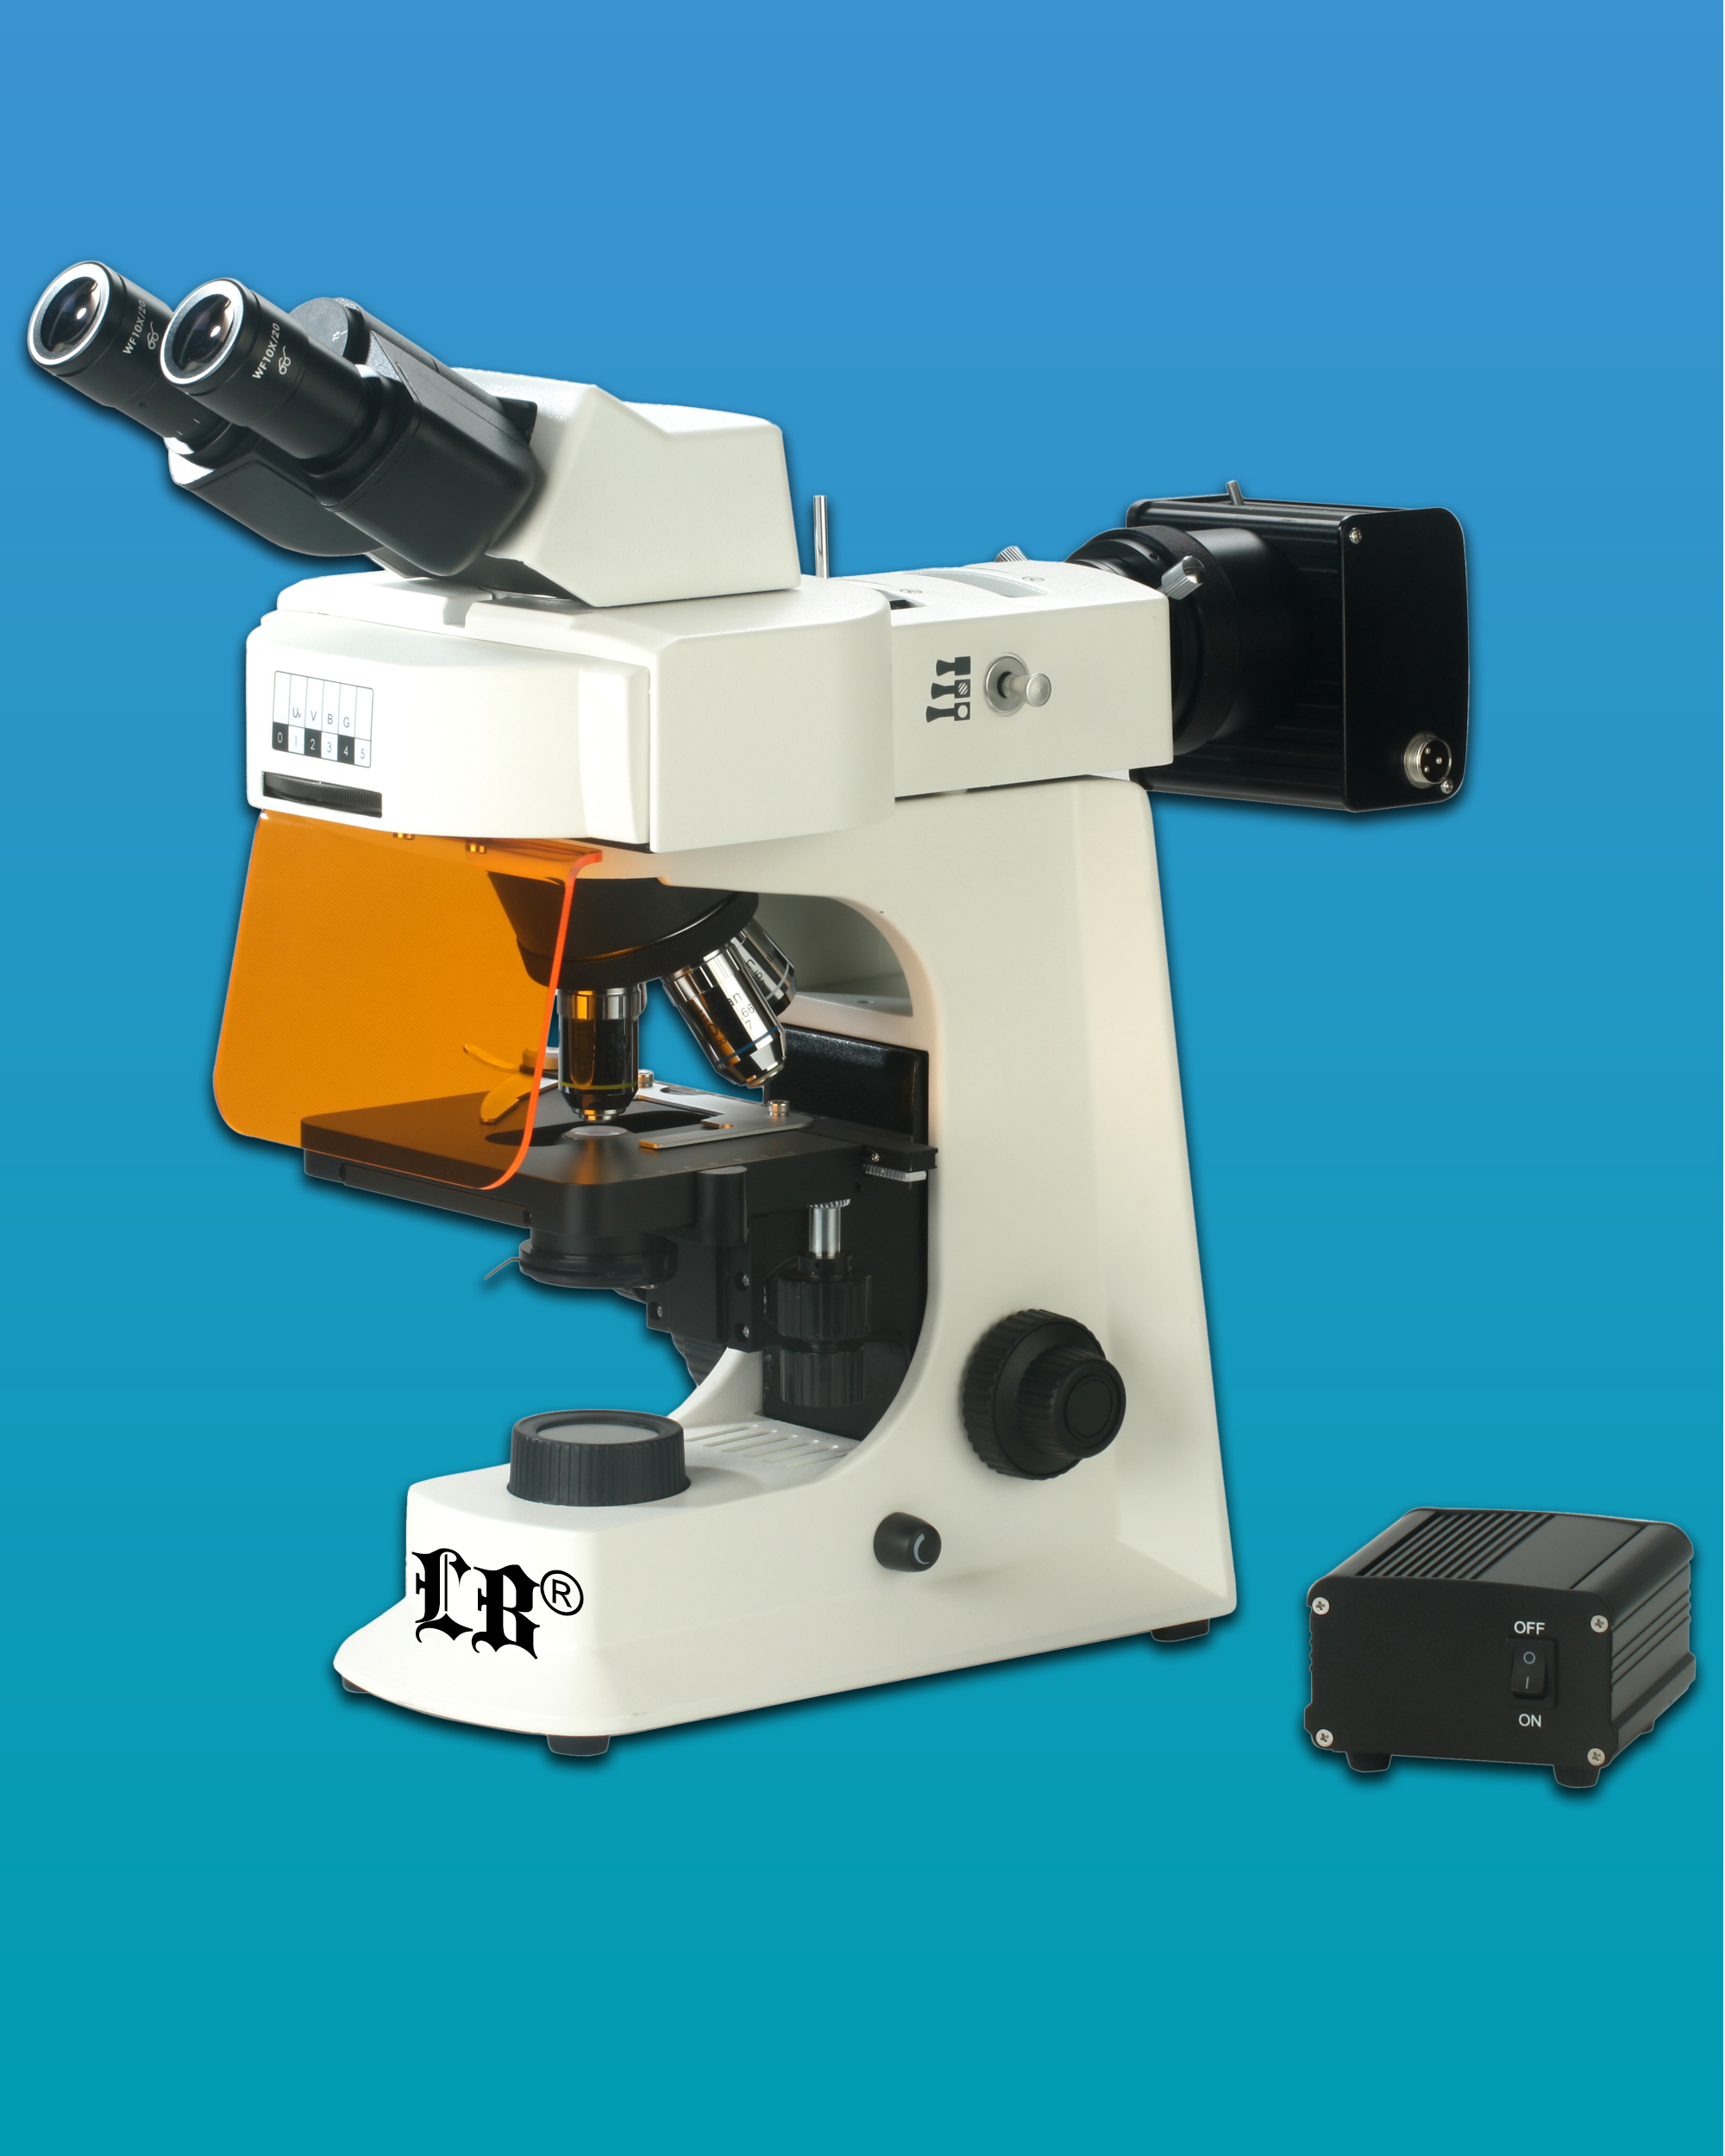 [LB-263] Biological Binocular Flourescent Microscope w/ LED Illumination &  Infinite Optical System